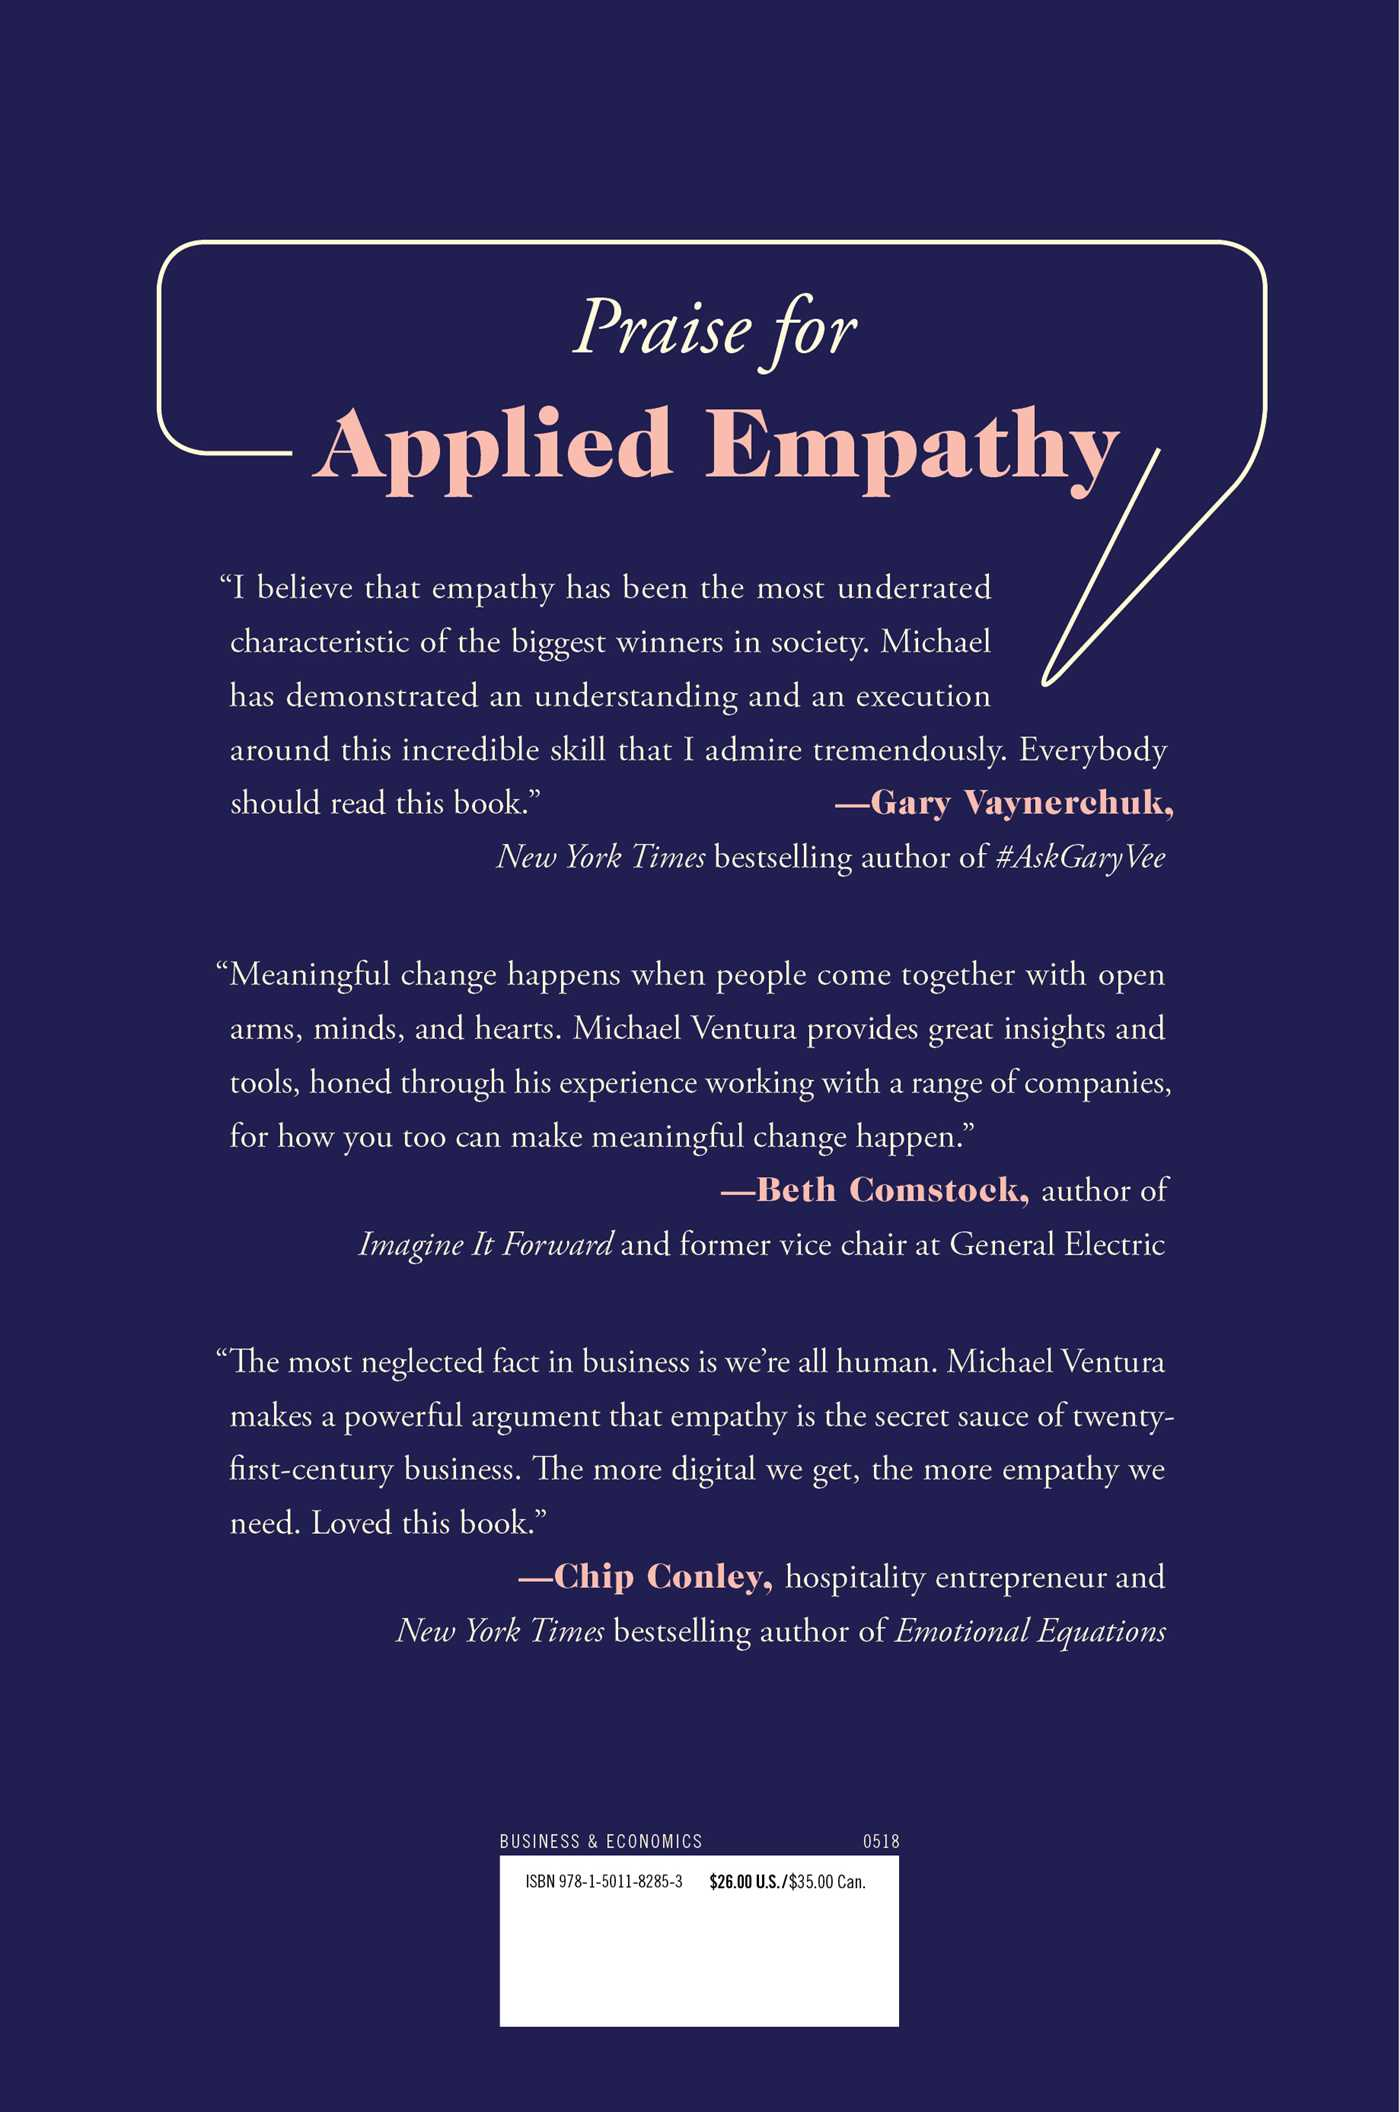 Applied empathy 9781501182853 hr back